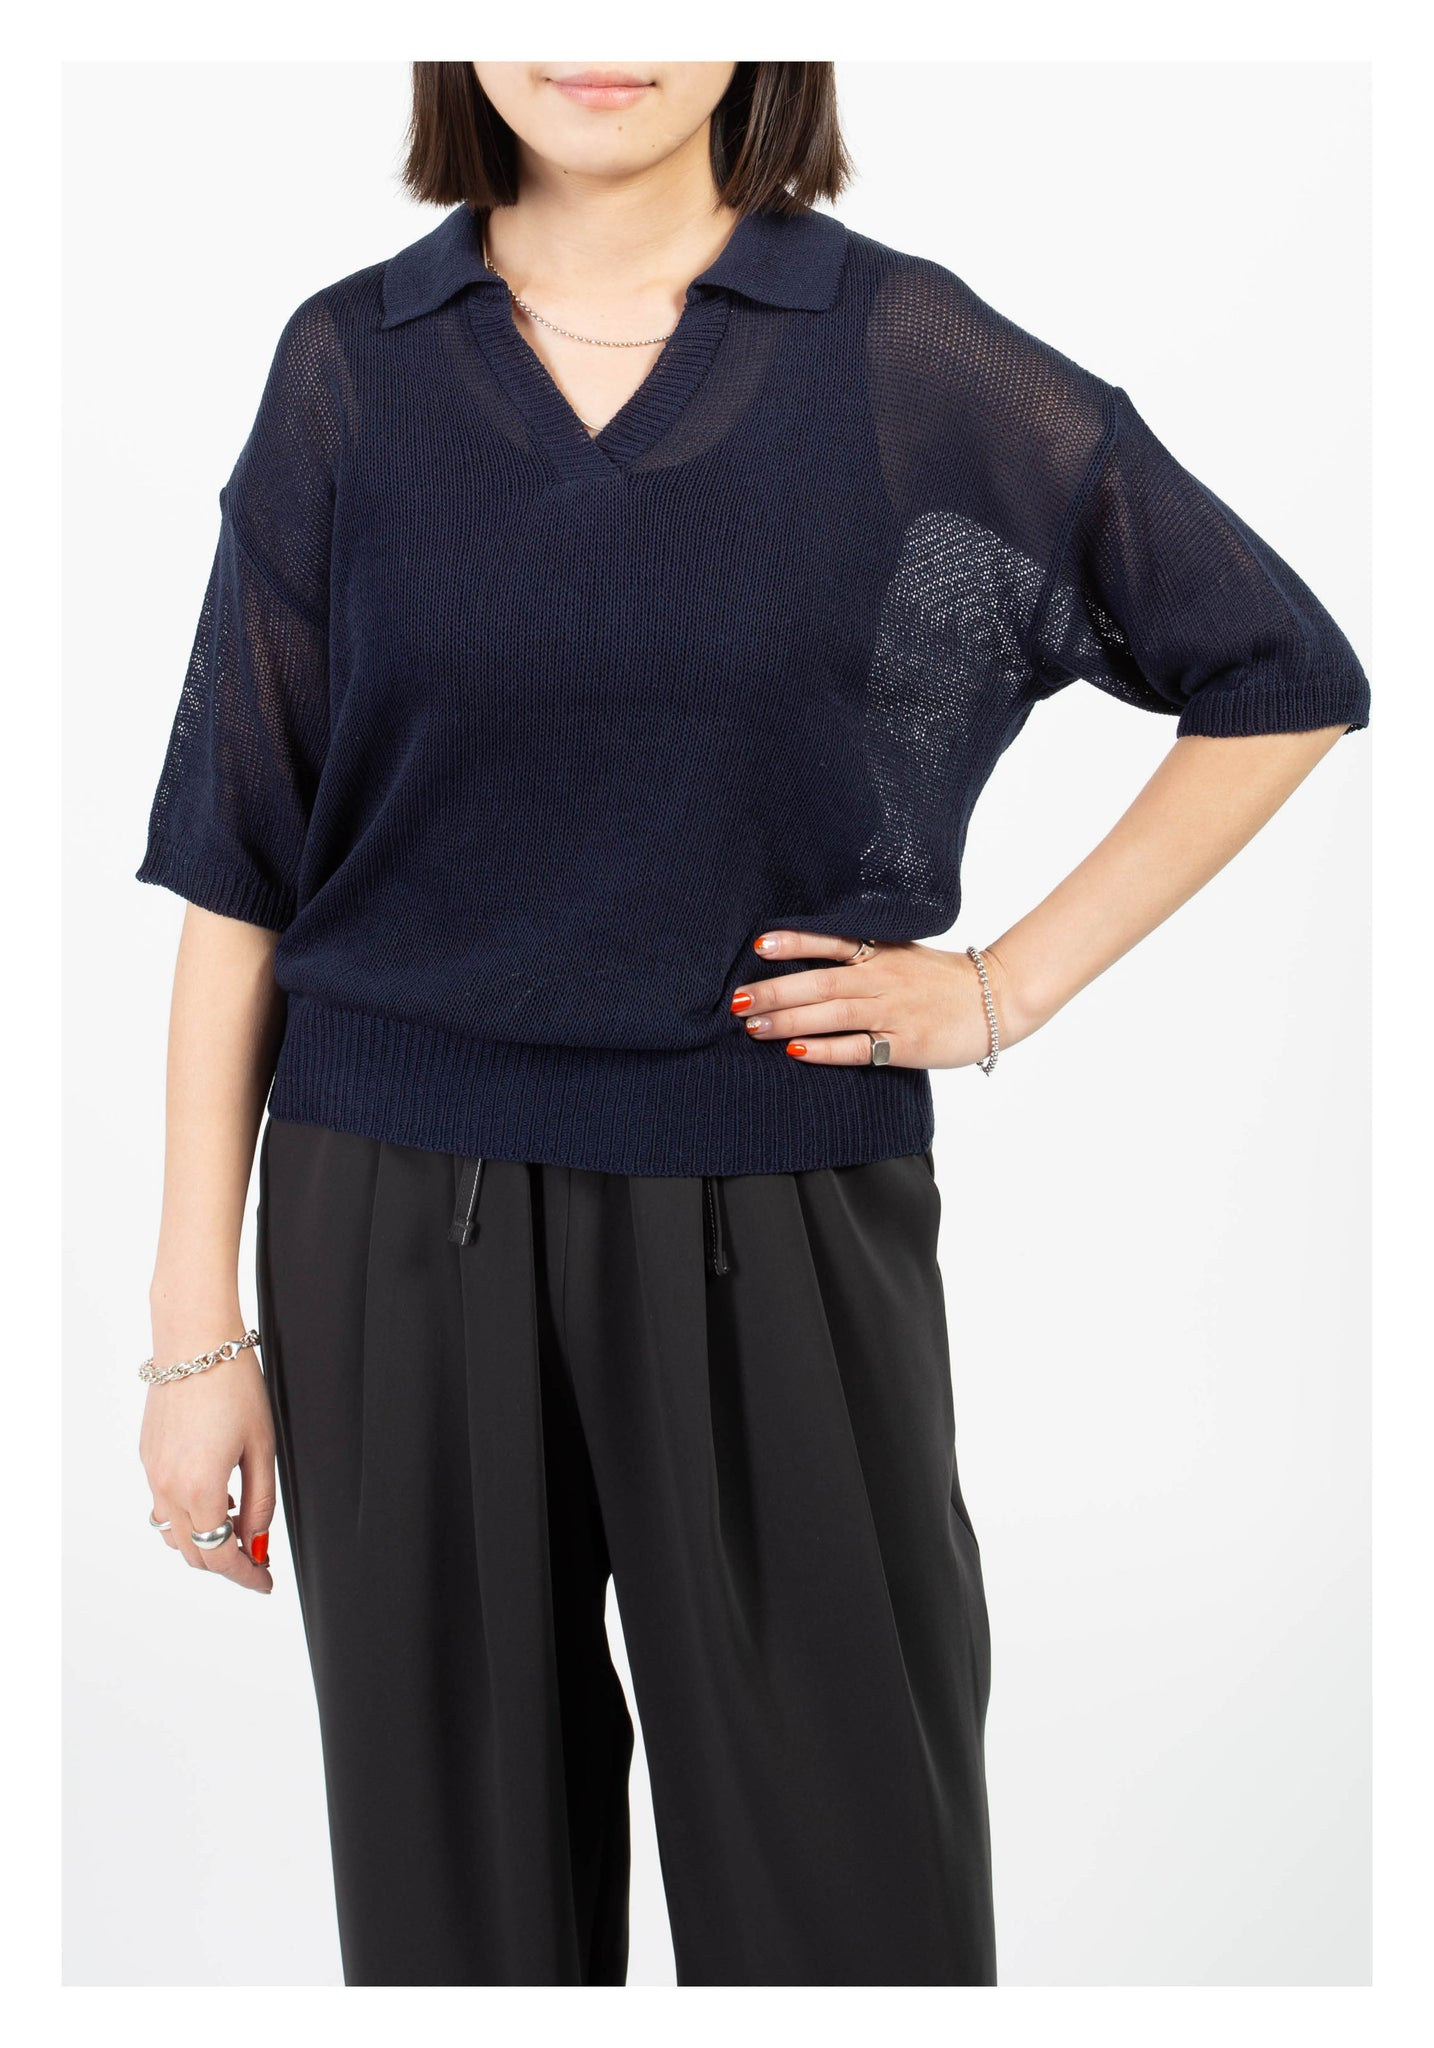 Open Collar Causal Knit Top Navy